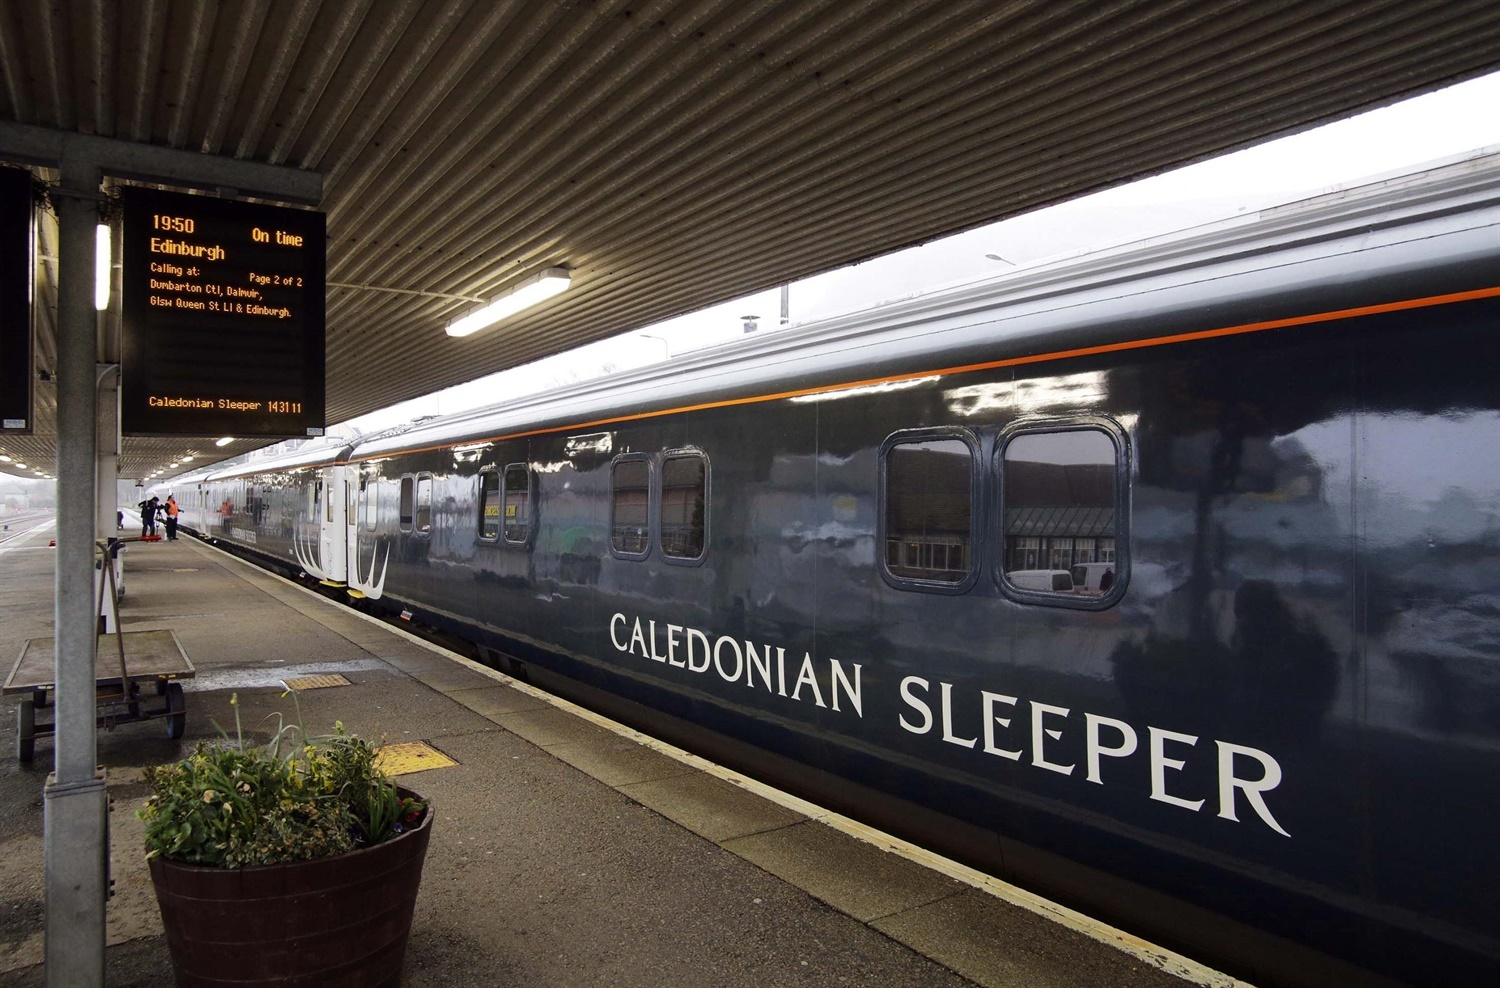 RMT accused of 'completely inaccurate' Caledonian Sleeper claims after disruption